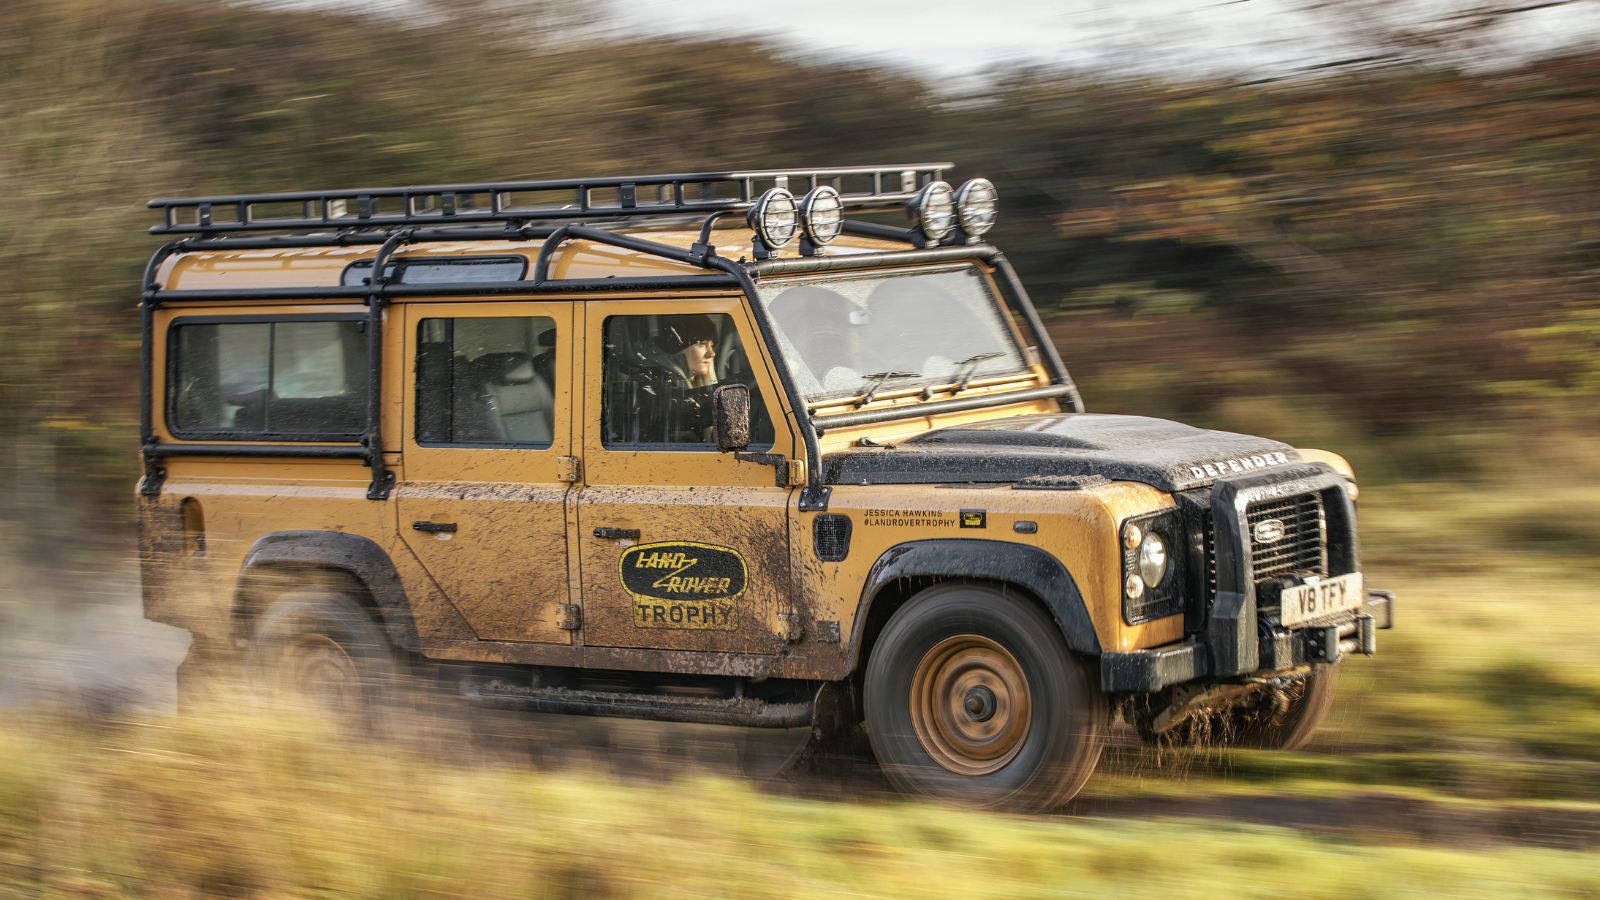 ADVENTURE READY LAND ROVER DEFENDER WORKS V8 TROPHY CELEBRATES EXPEDITION LEGACY WITH UNIQUE EXPERIENCE